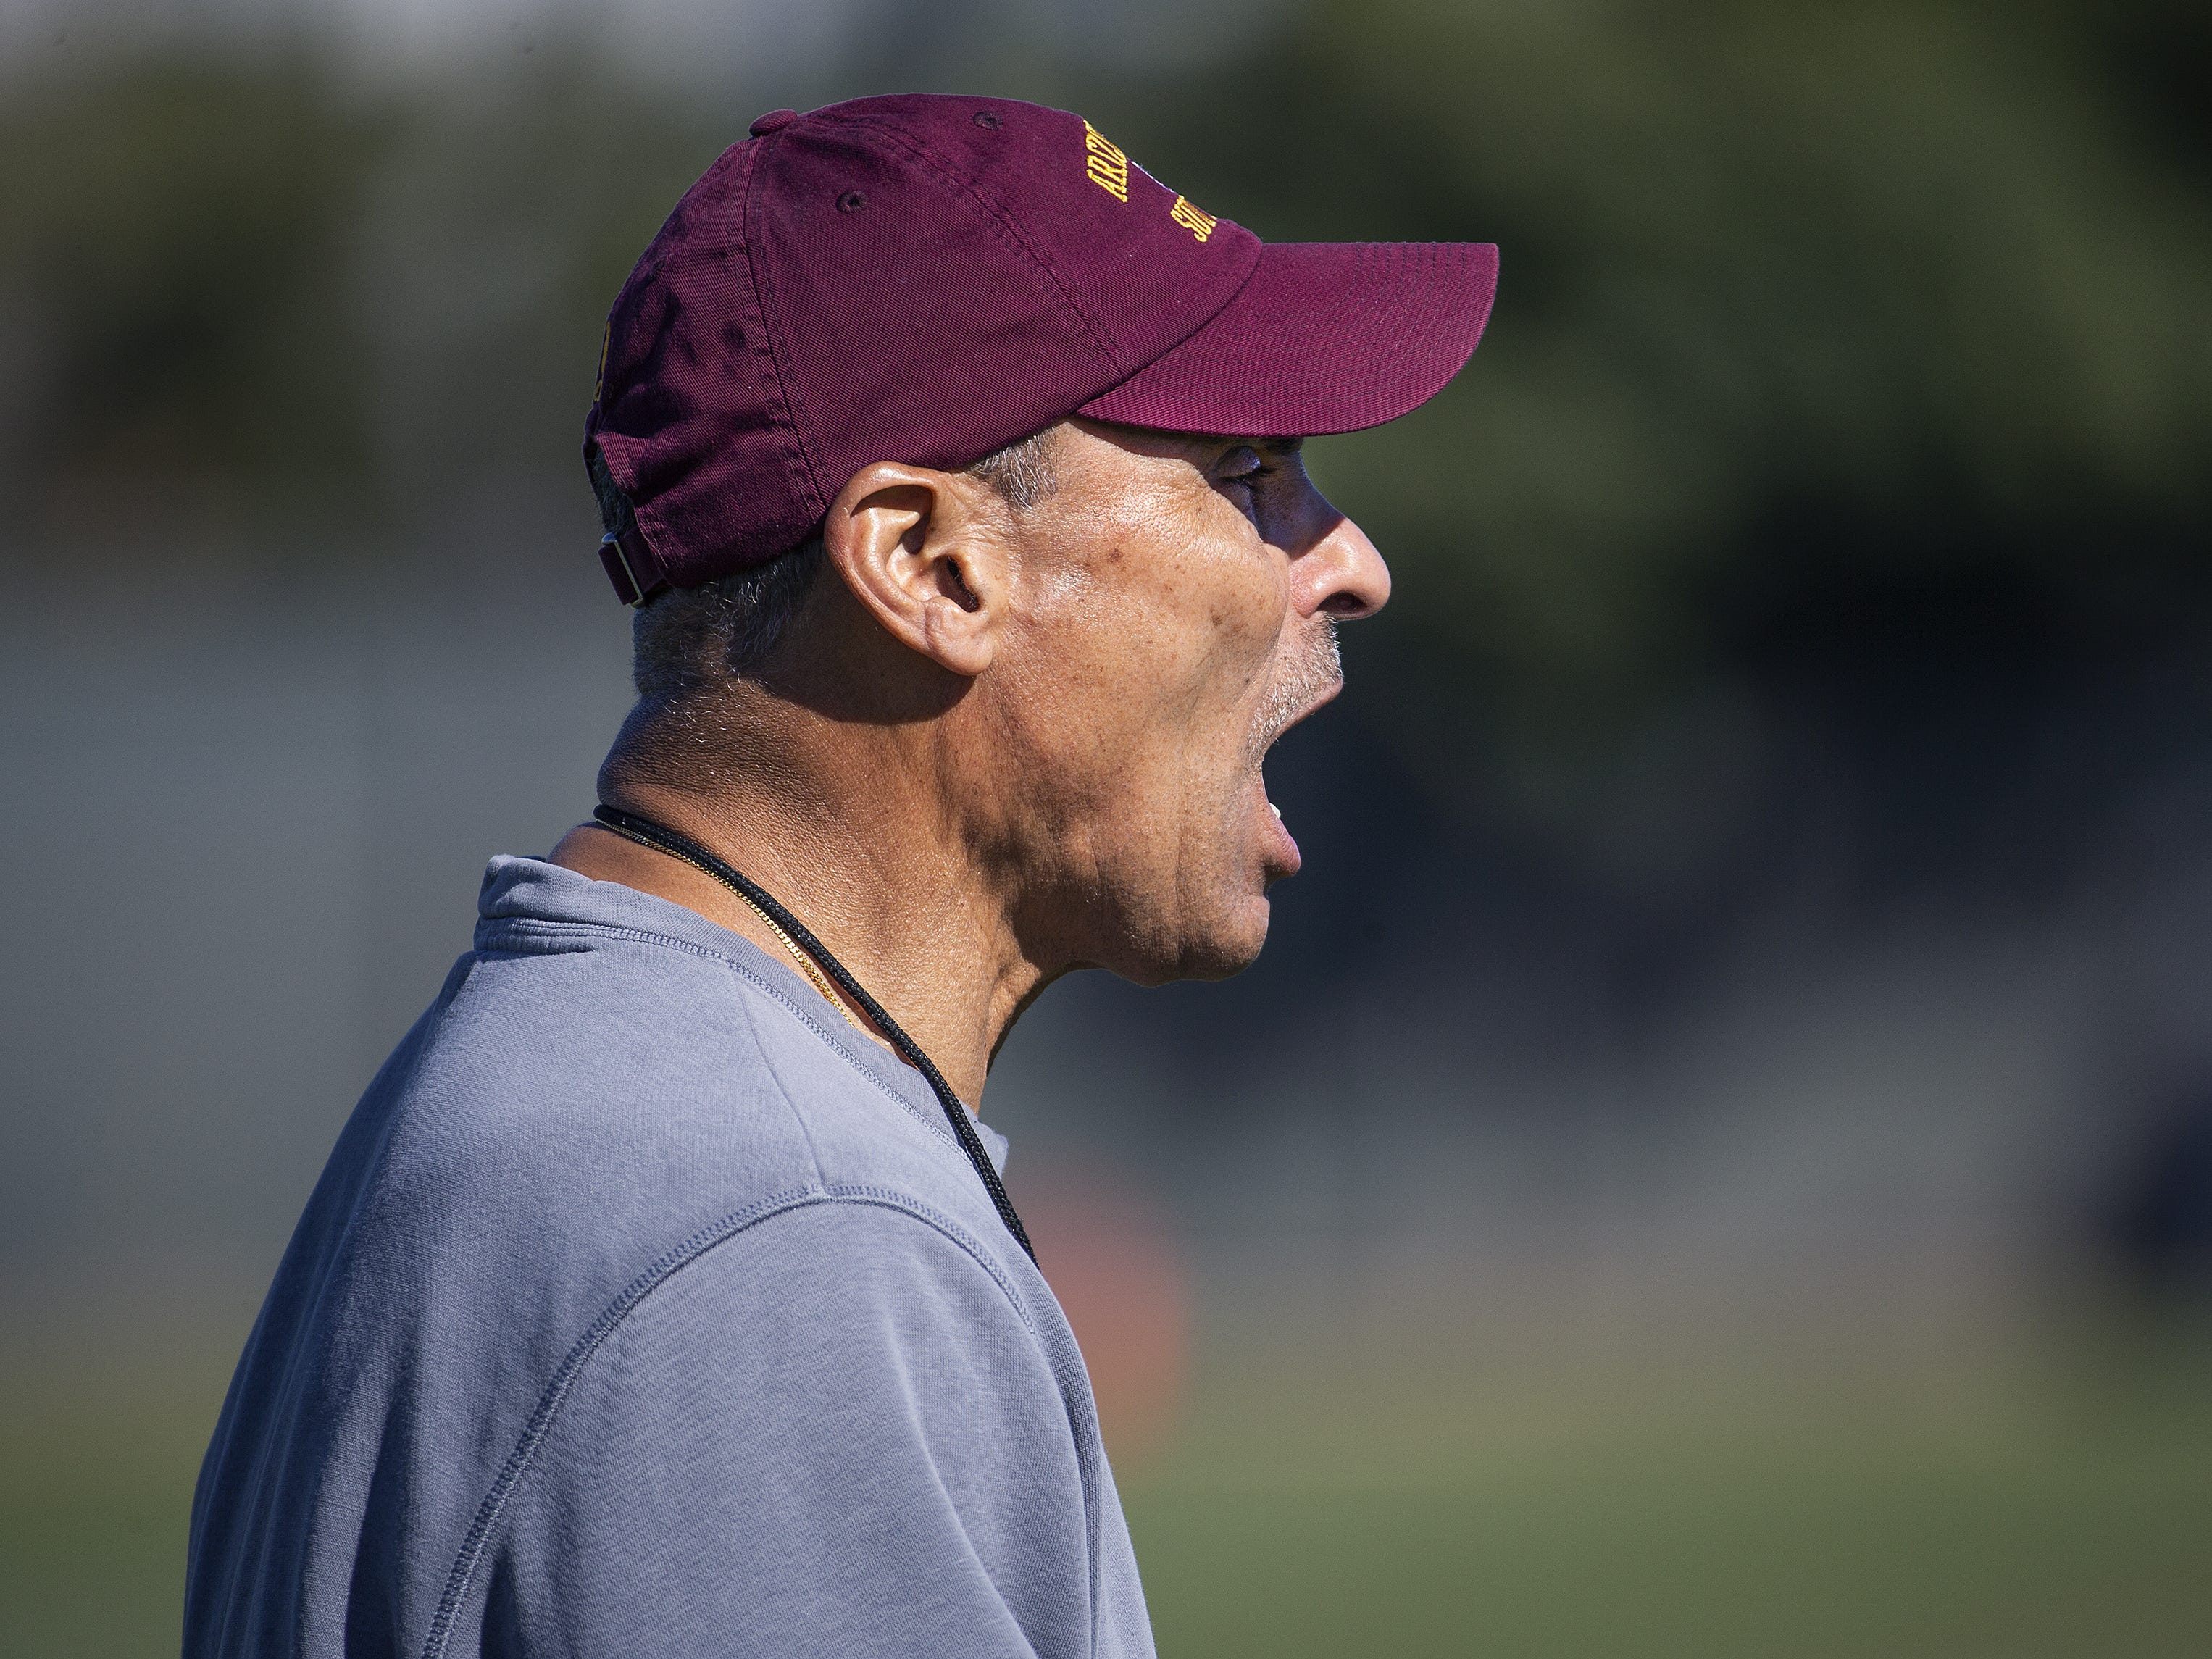 The Arizona State University football team practiced in Tempe, Tuesday, February 26, 2019.   Head coach Herm Edwards barks instructions.